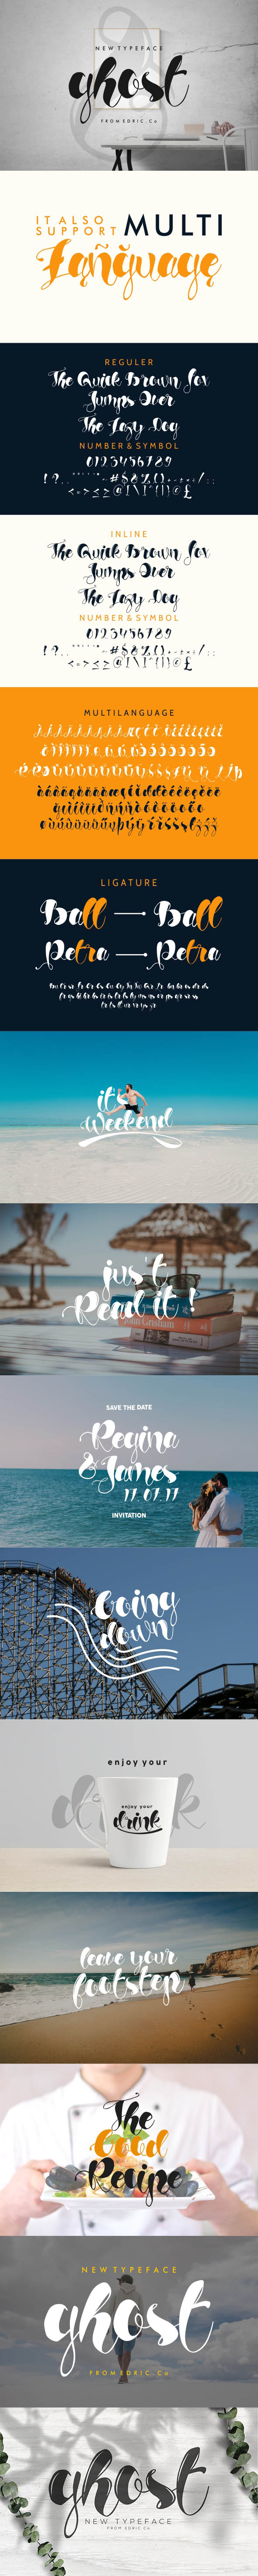 Playful Graphics Designs & Templates from GraphicRiver Page 9